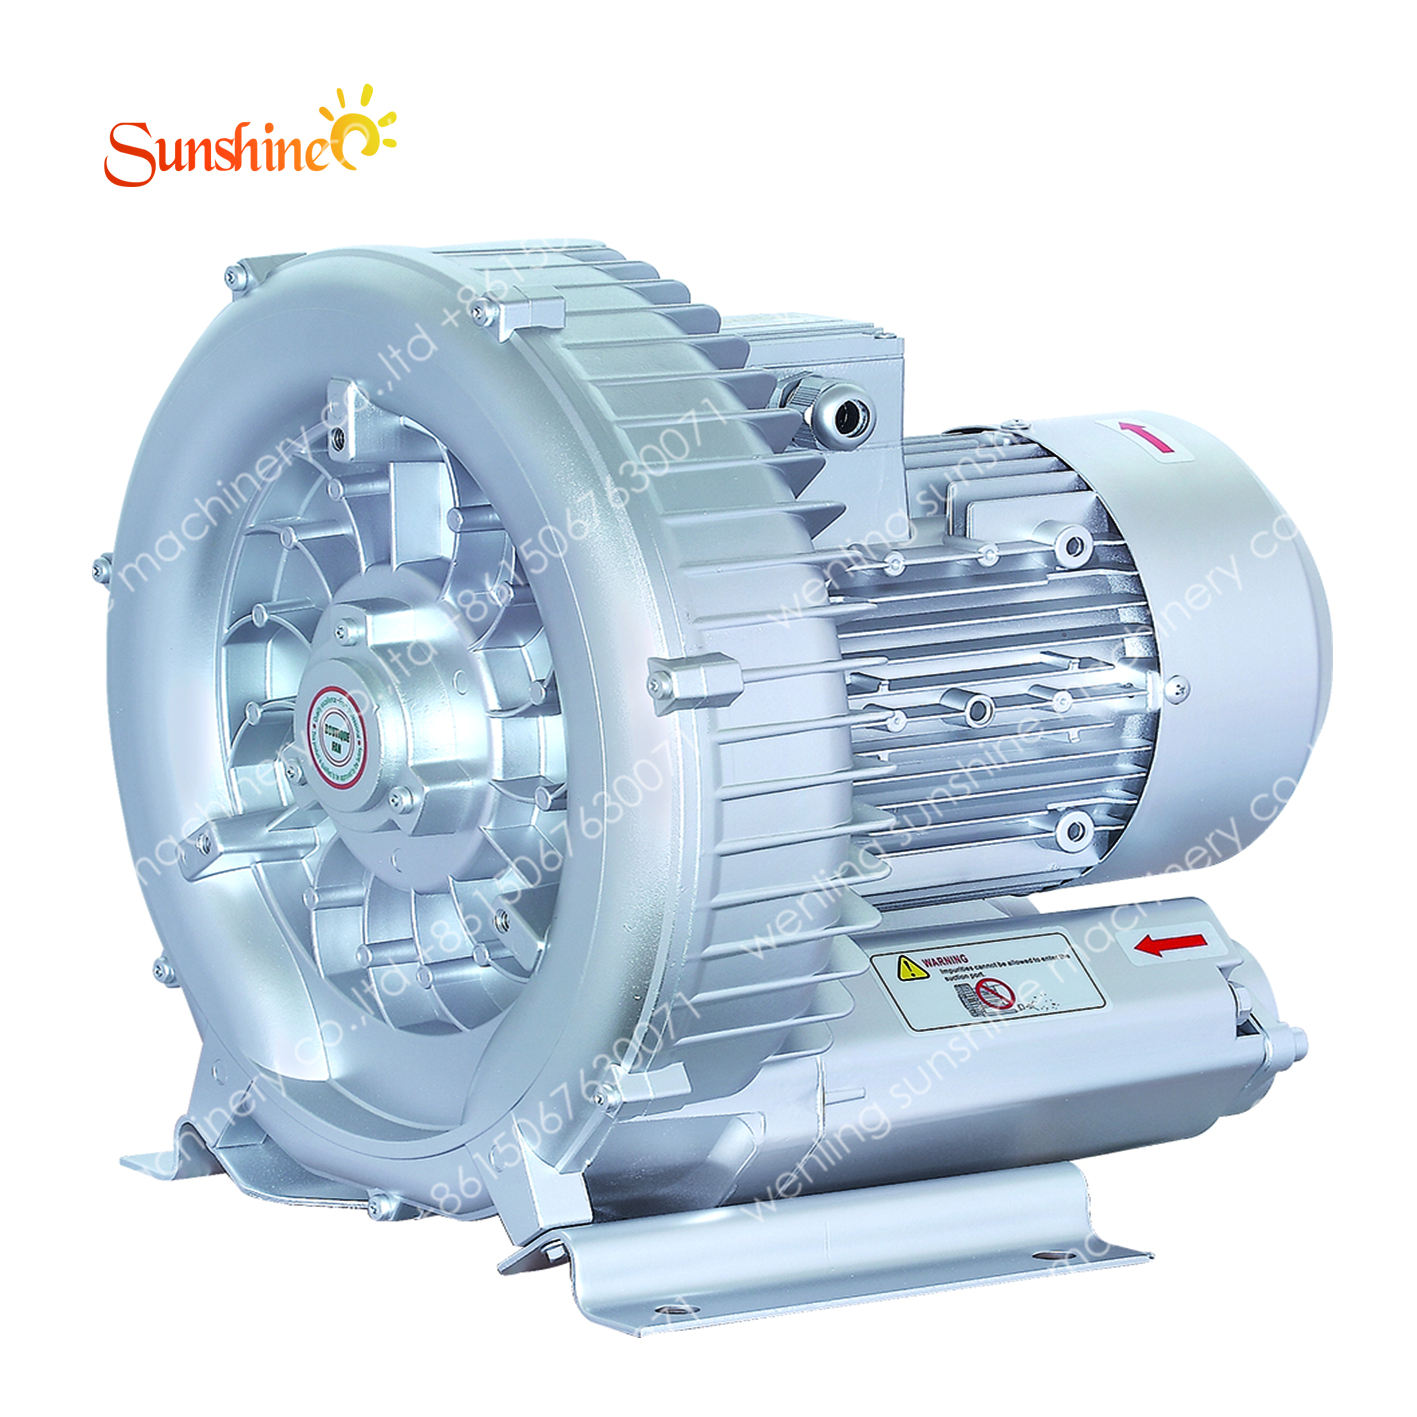 2019 sunshine blower for fish farm given all the holidays and year-end activities.